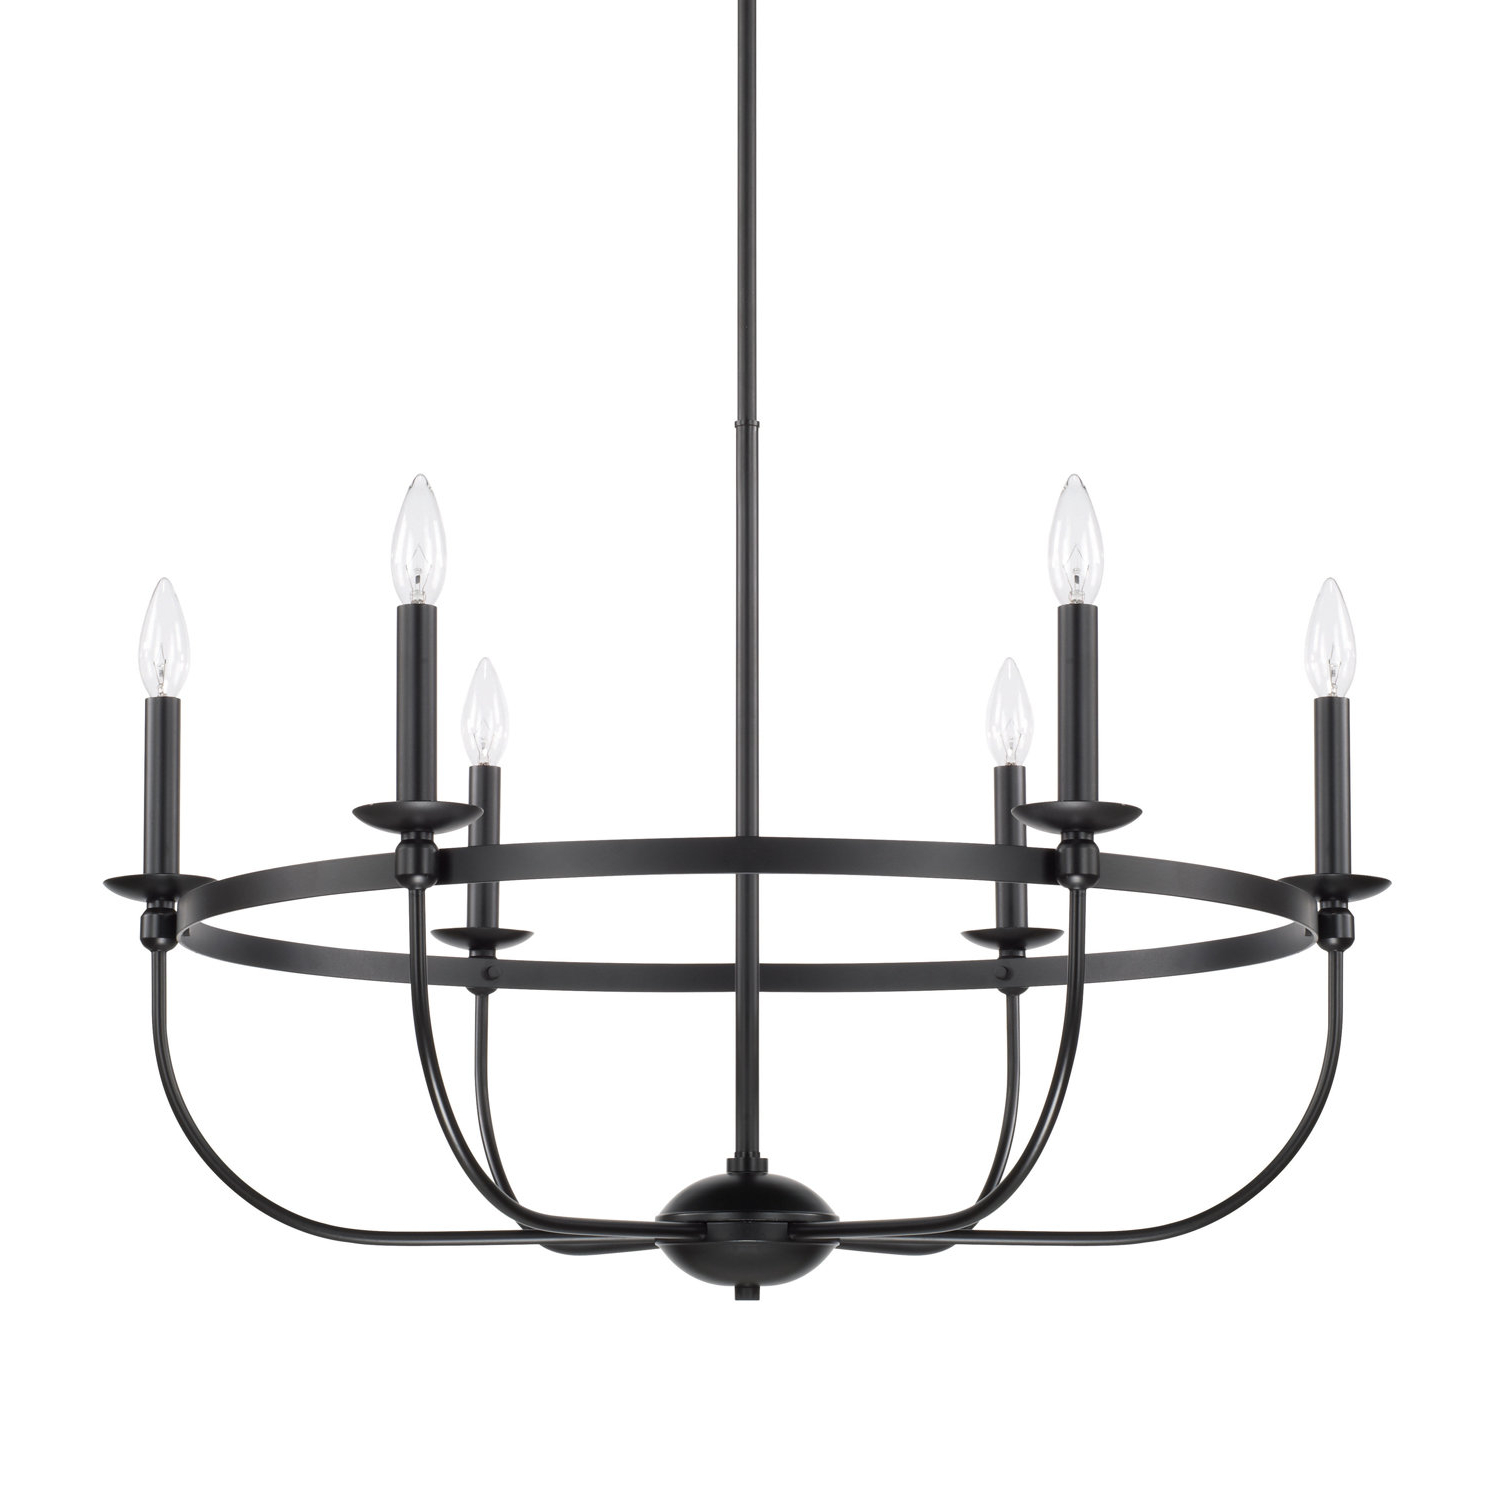 Diaz 6 Light Candle Style Chandeliers Intended For Best And Newest Gracie Oaks Claughaun 6 Light Candle Style Chandelier (View 14 of 20)